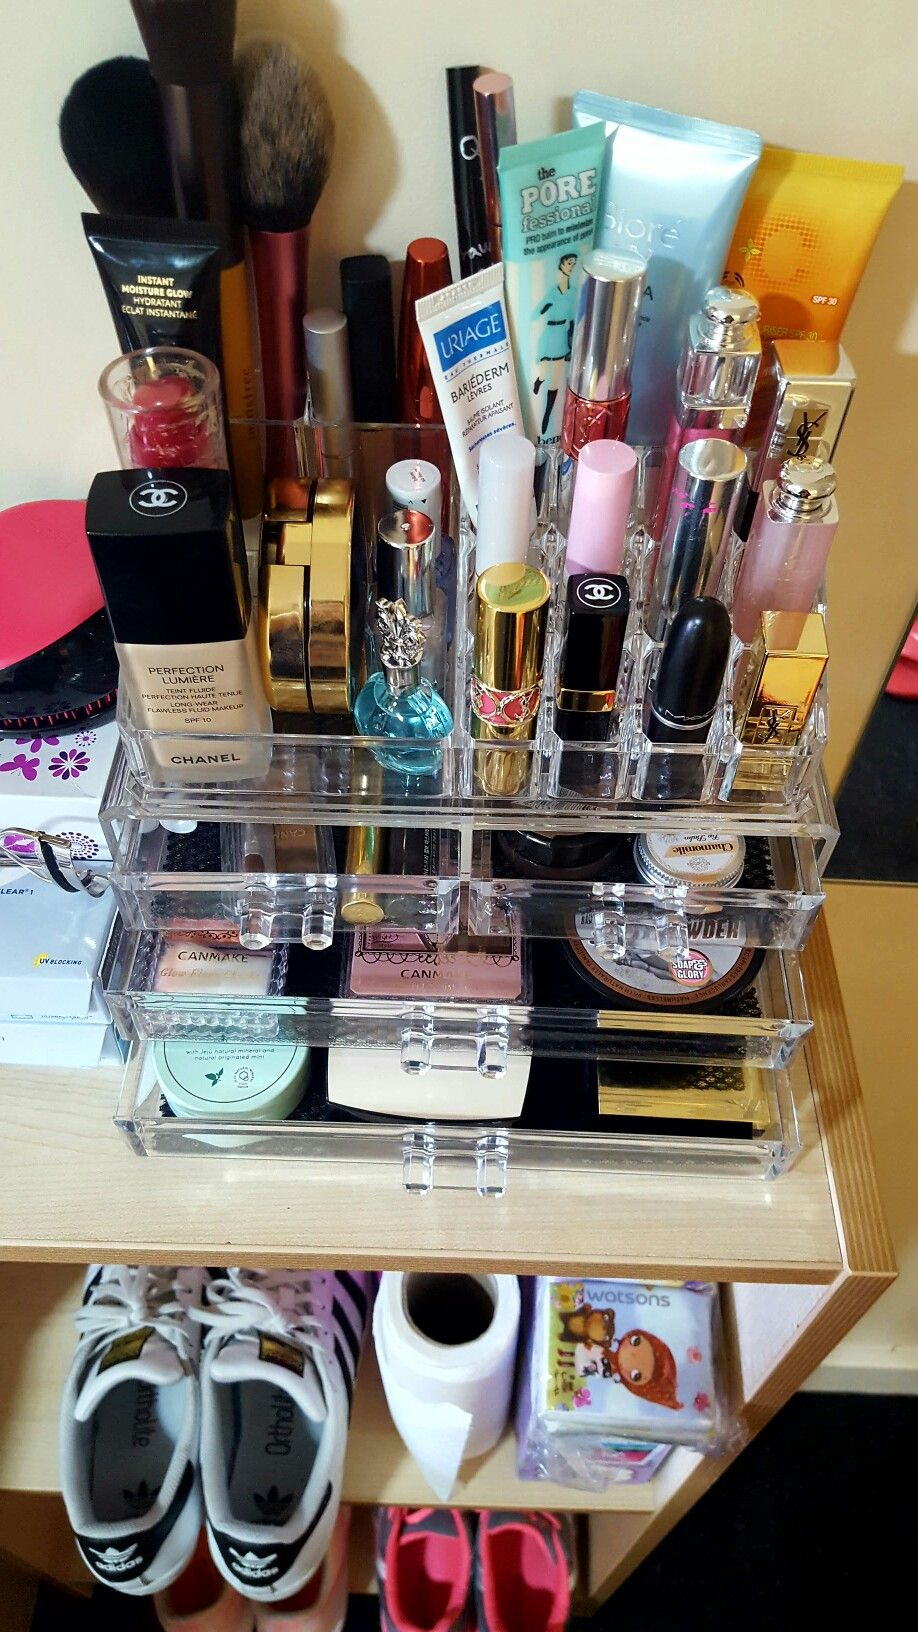 Pin by توتة جدة on Pic22 in 2019 Makeup organization